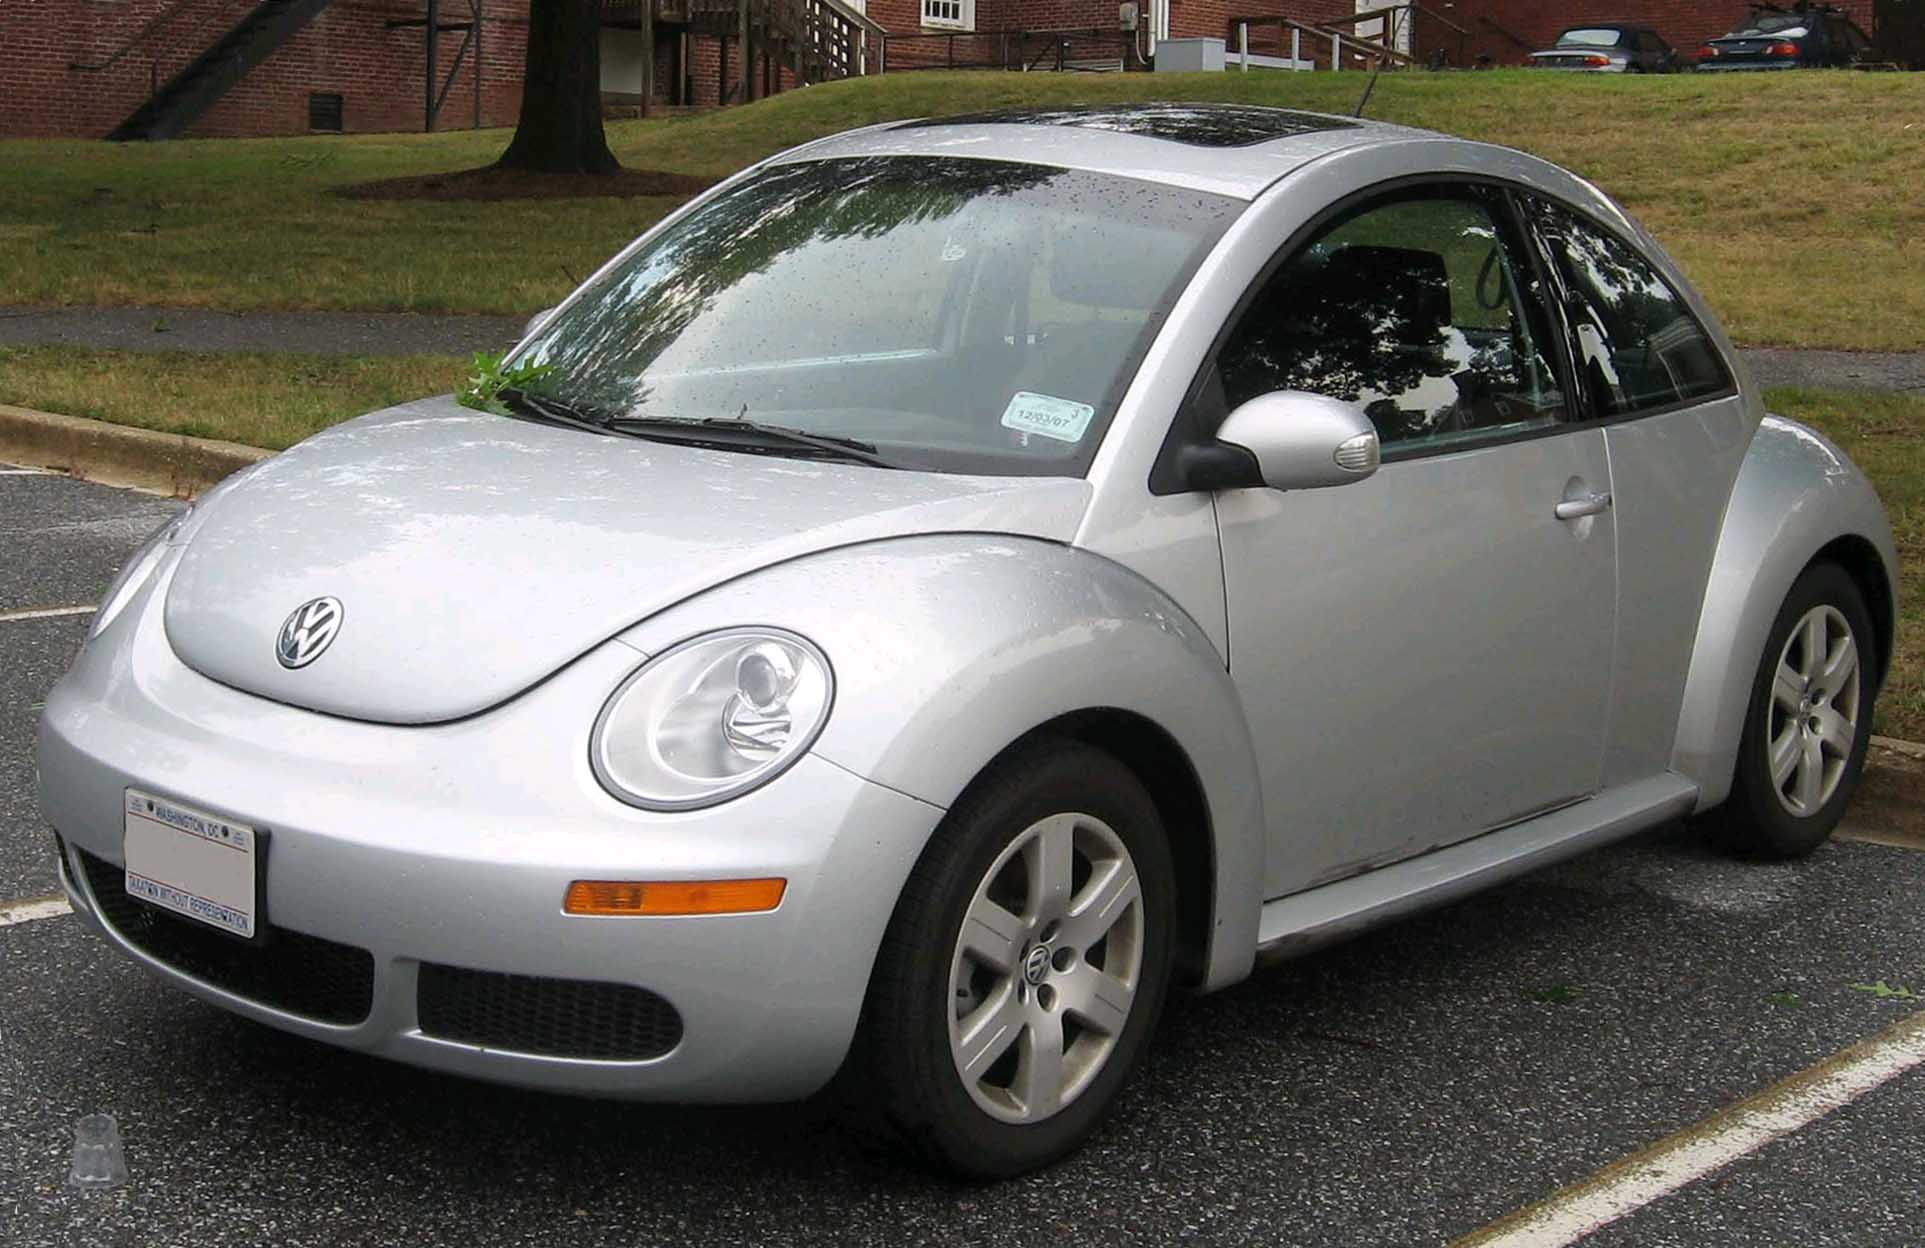 Volkswagen New Beetle Corolla Rxi 20v Modified Cars Pictures